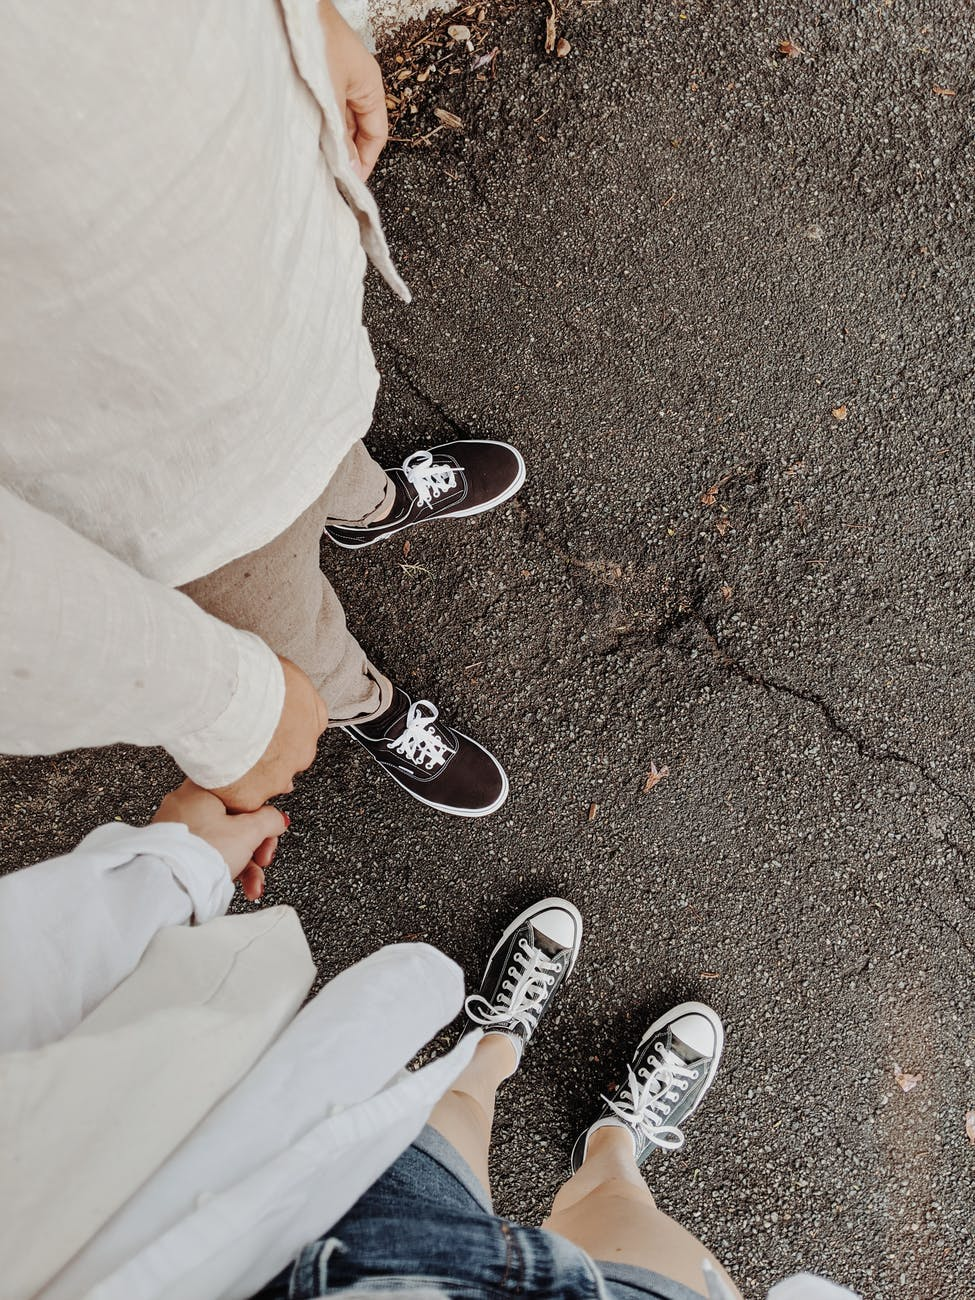 people in black and white sneakers